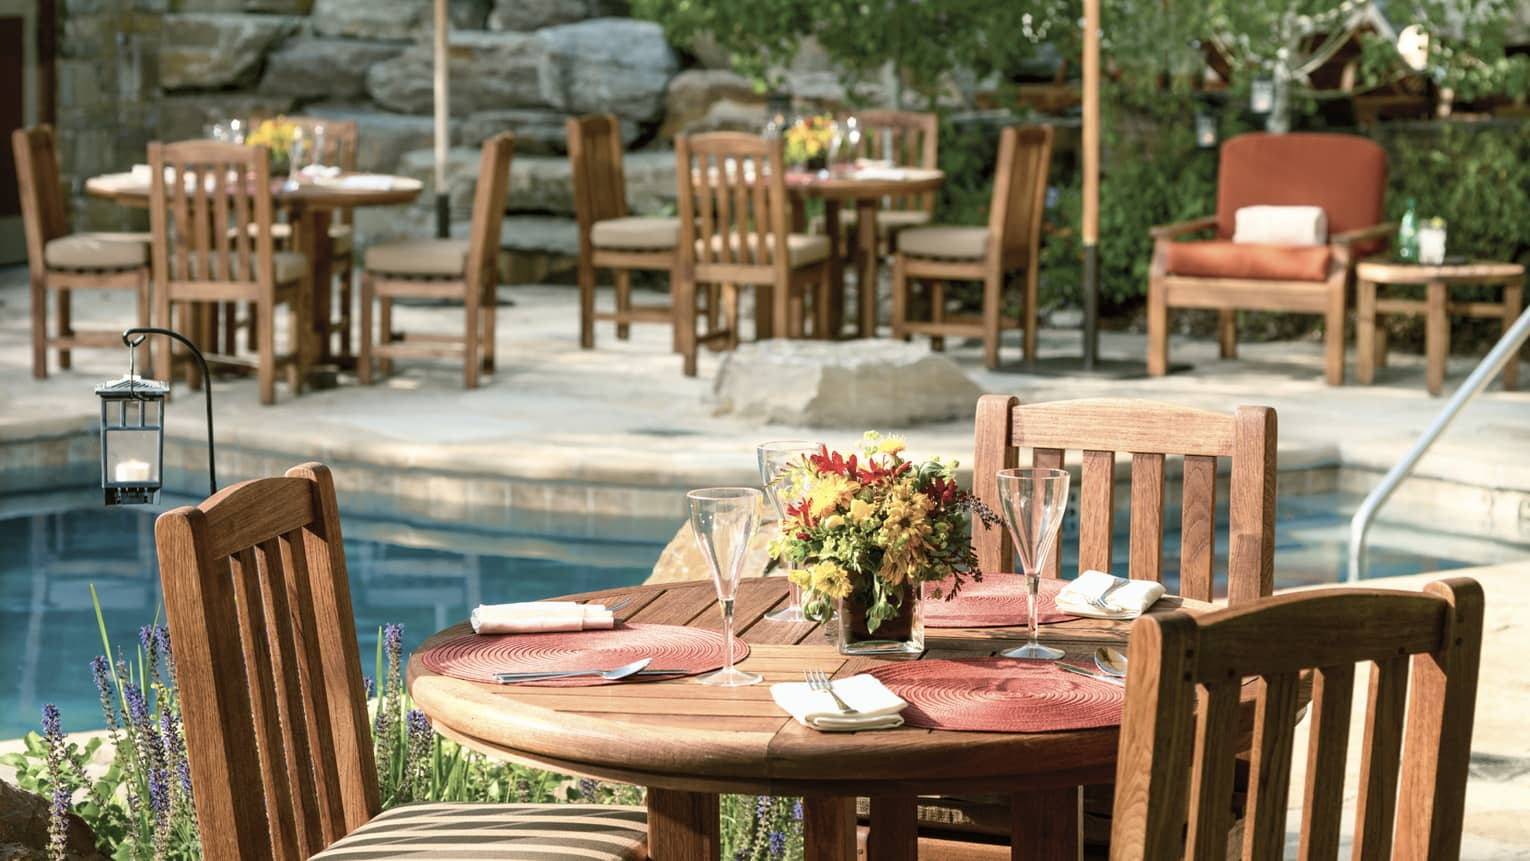 Poolside cafe table-setting with patio umbrellas and fresh-cut flowers.